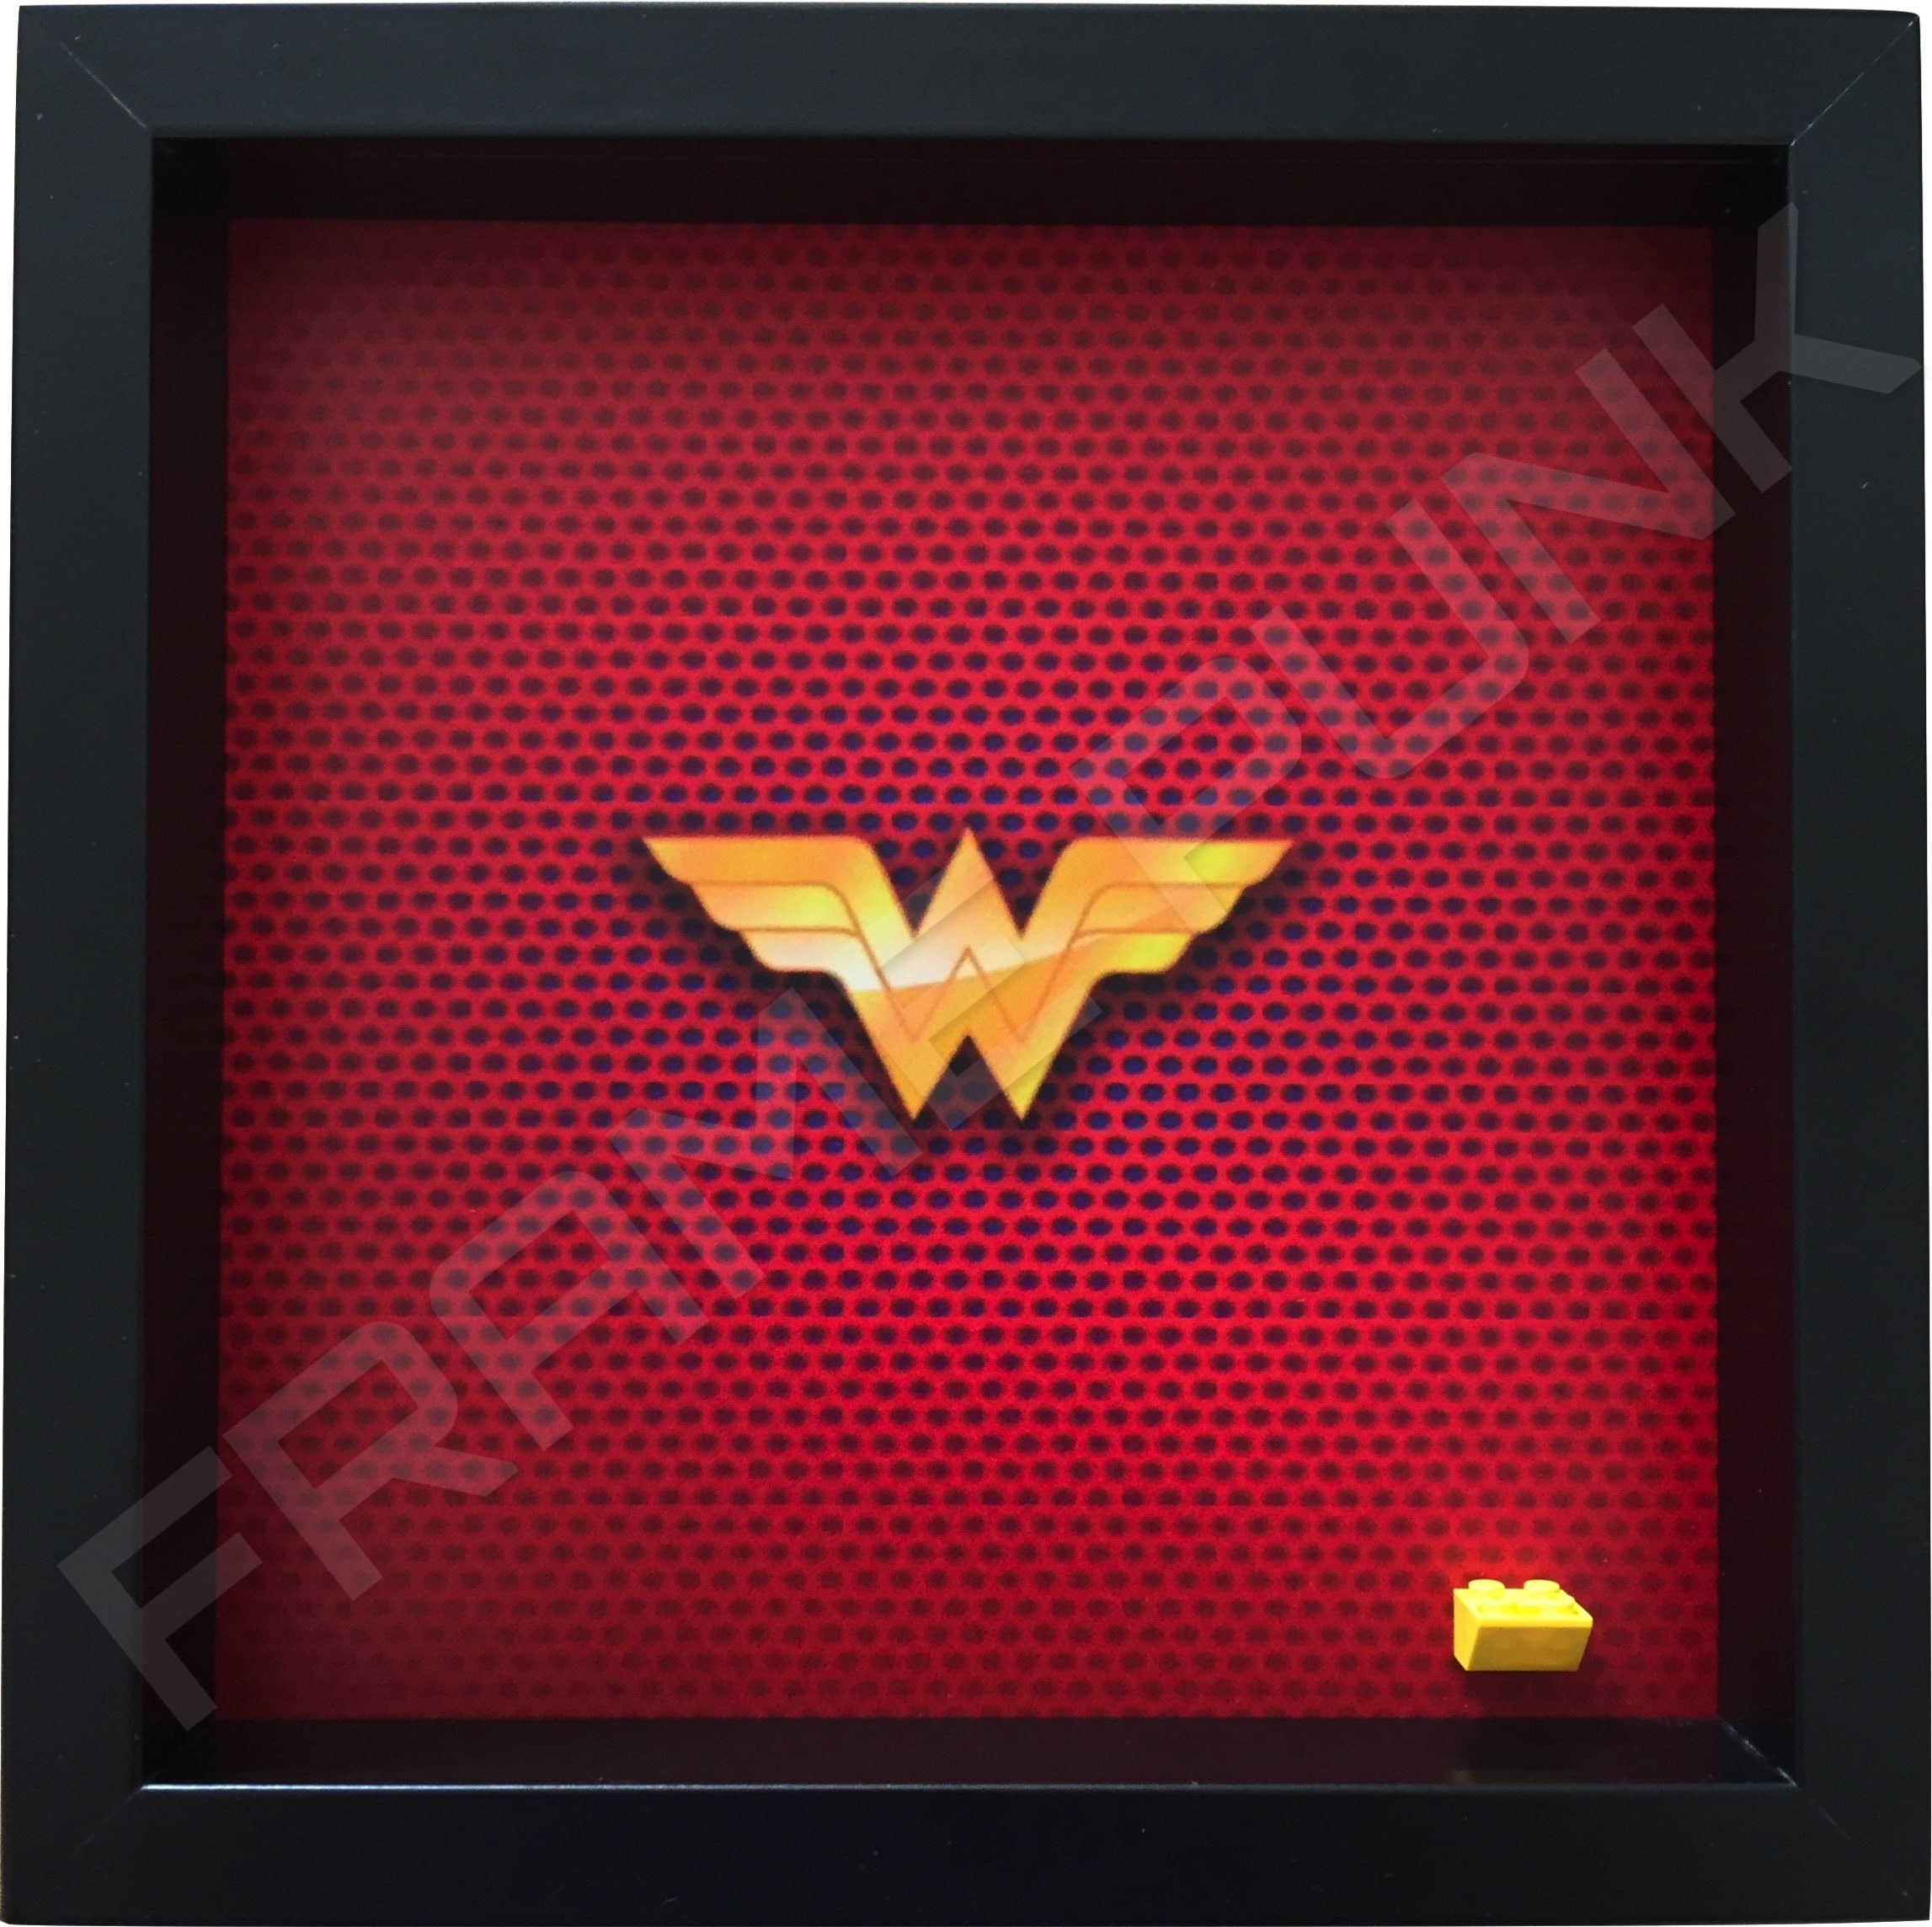 LEGO Wonder Woman Minifigure display frame